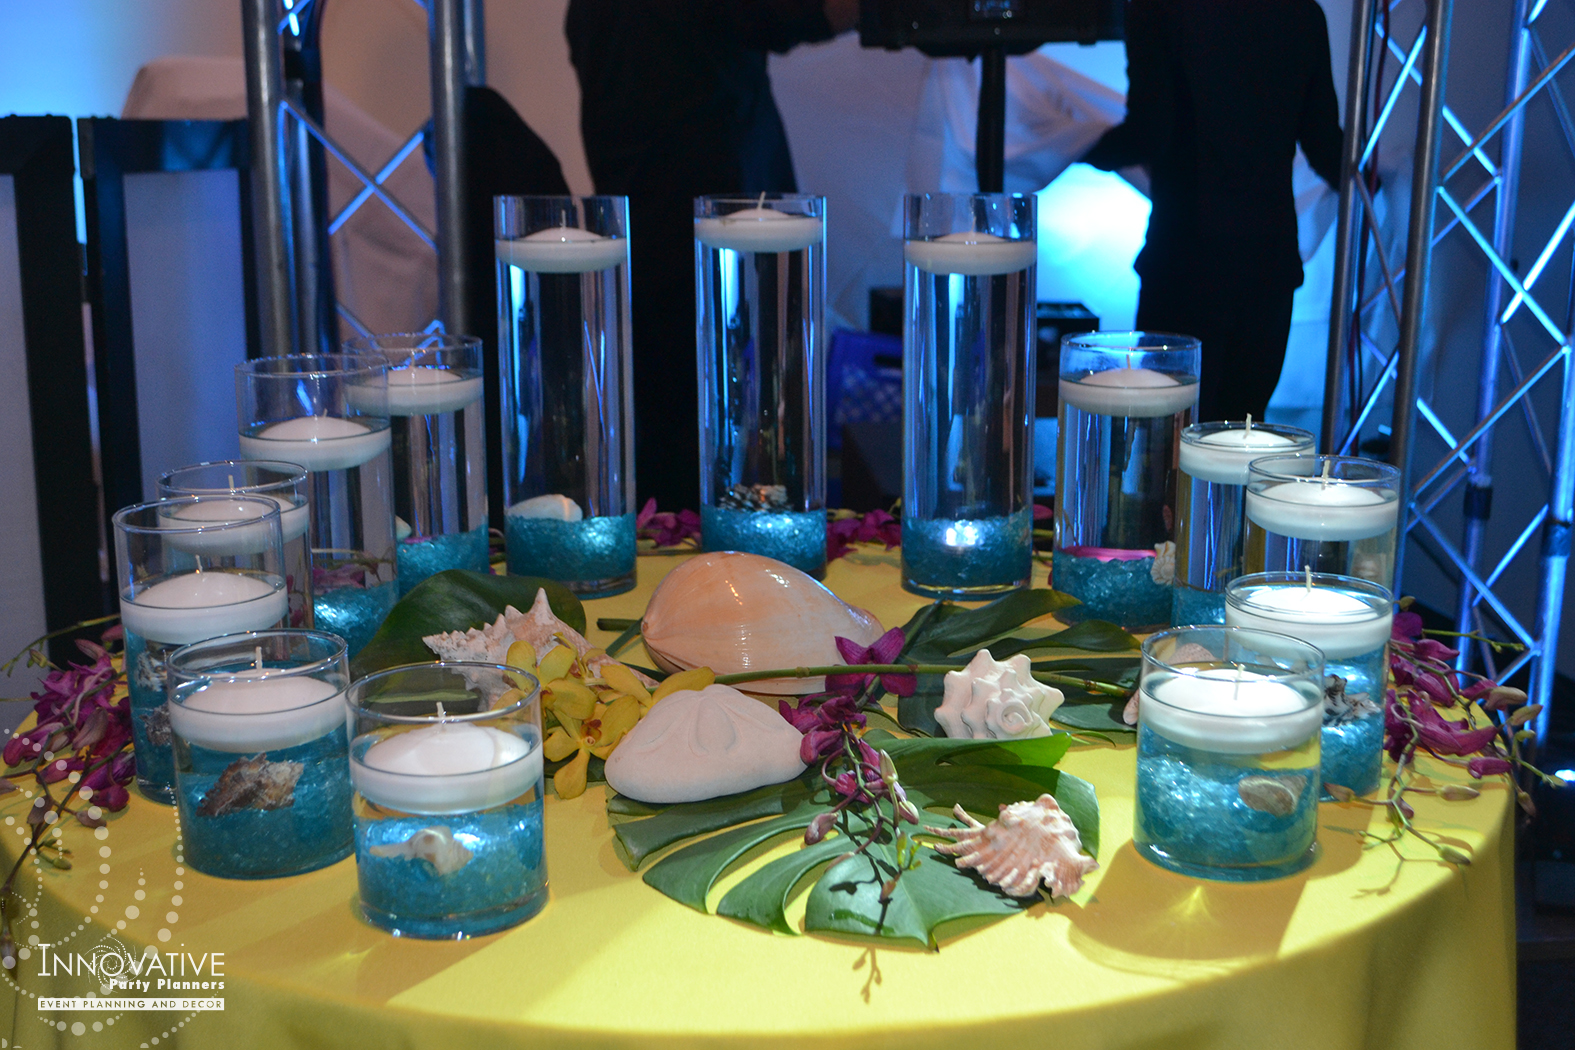 Escape to Hawaii at Temple Beth Shalom - Bat Mitzvah Celebration